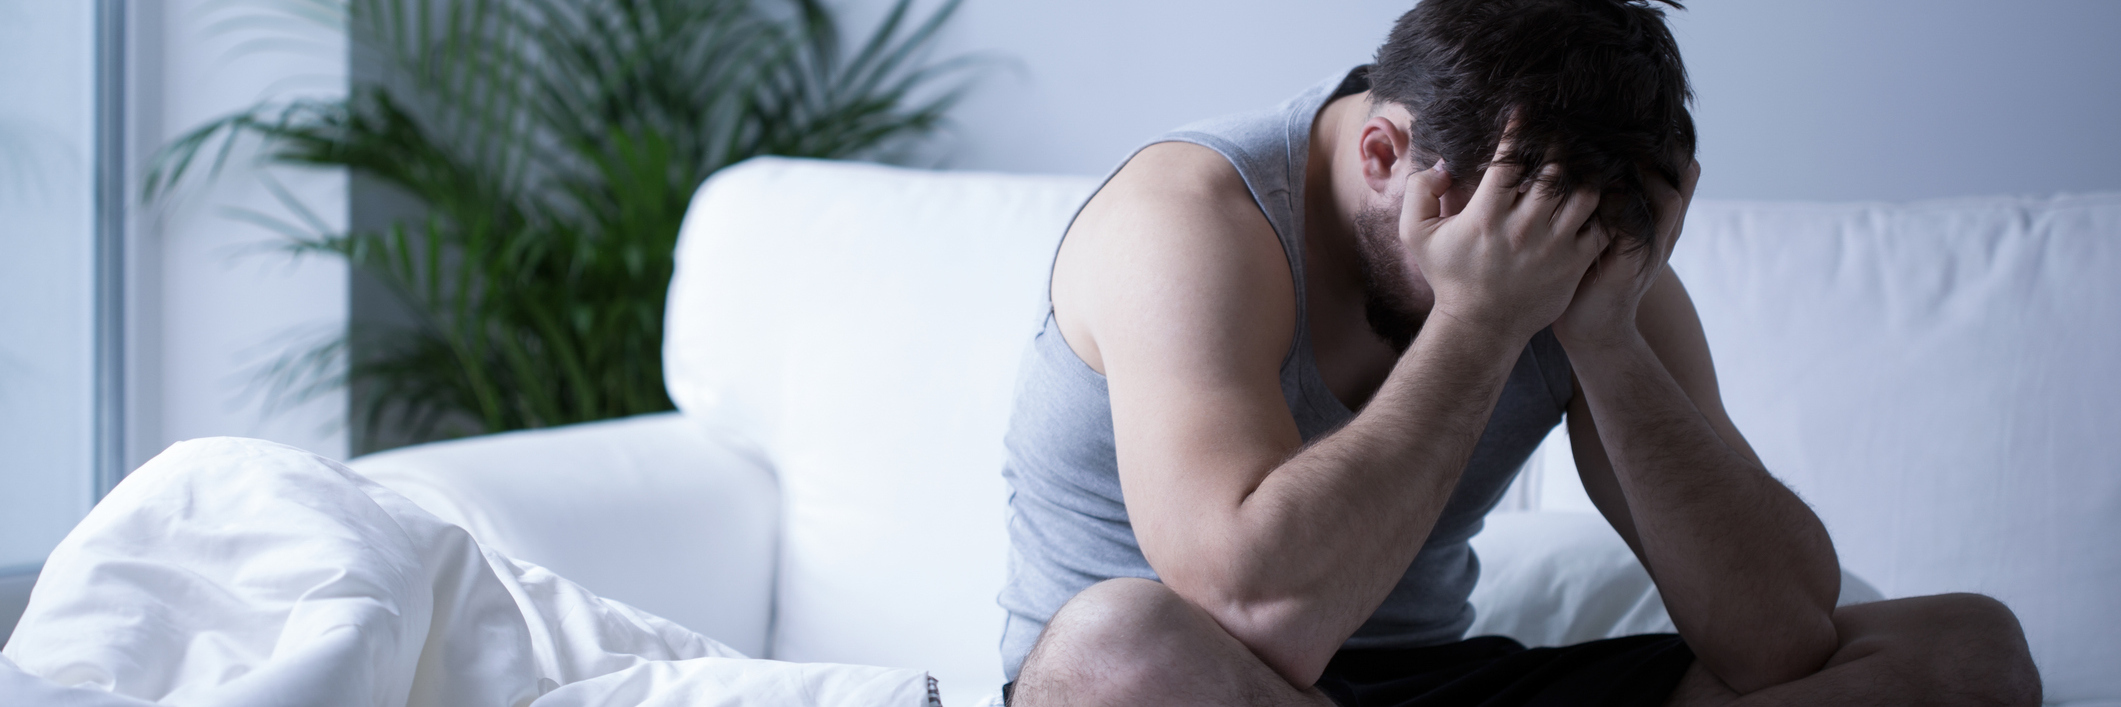 young man sitting on bed depression